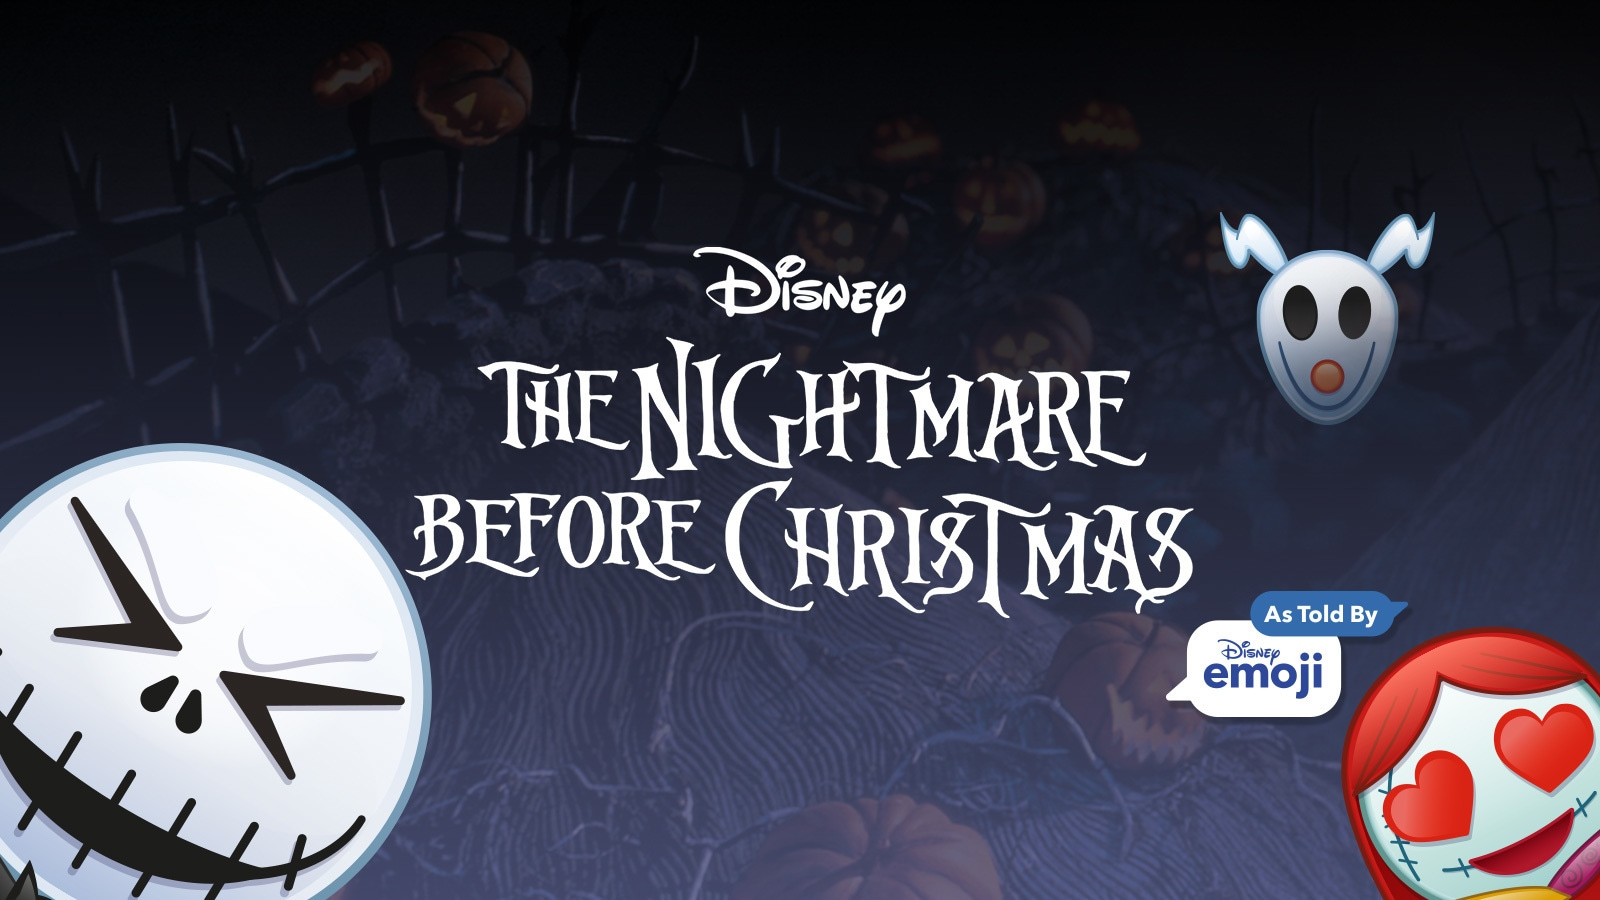 The Nightmare Before Christmas As Told by Emoji